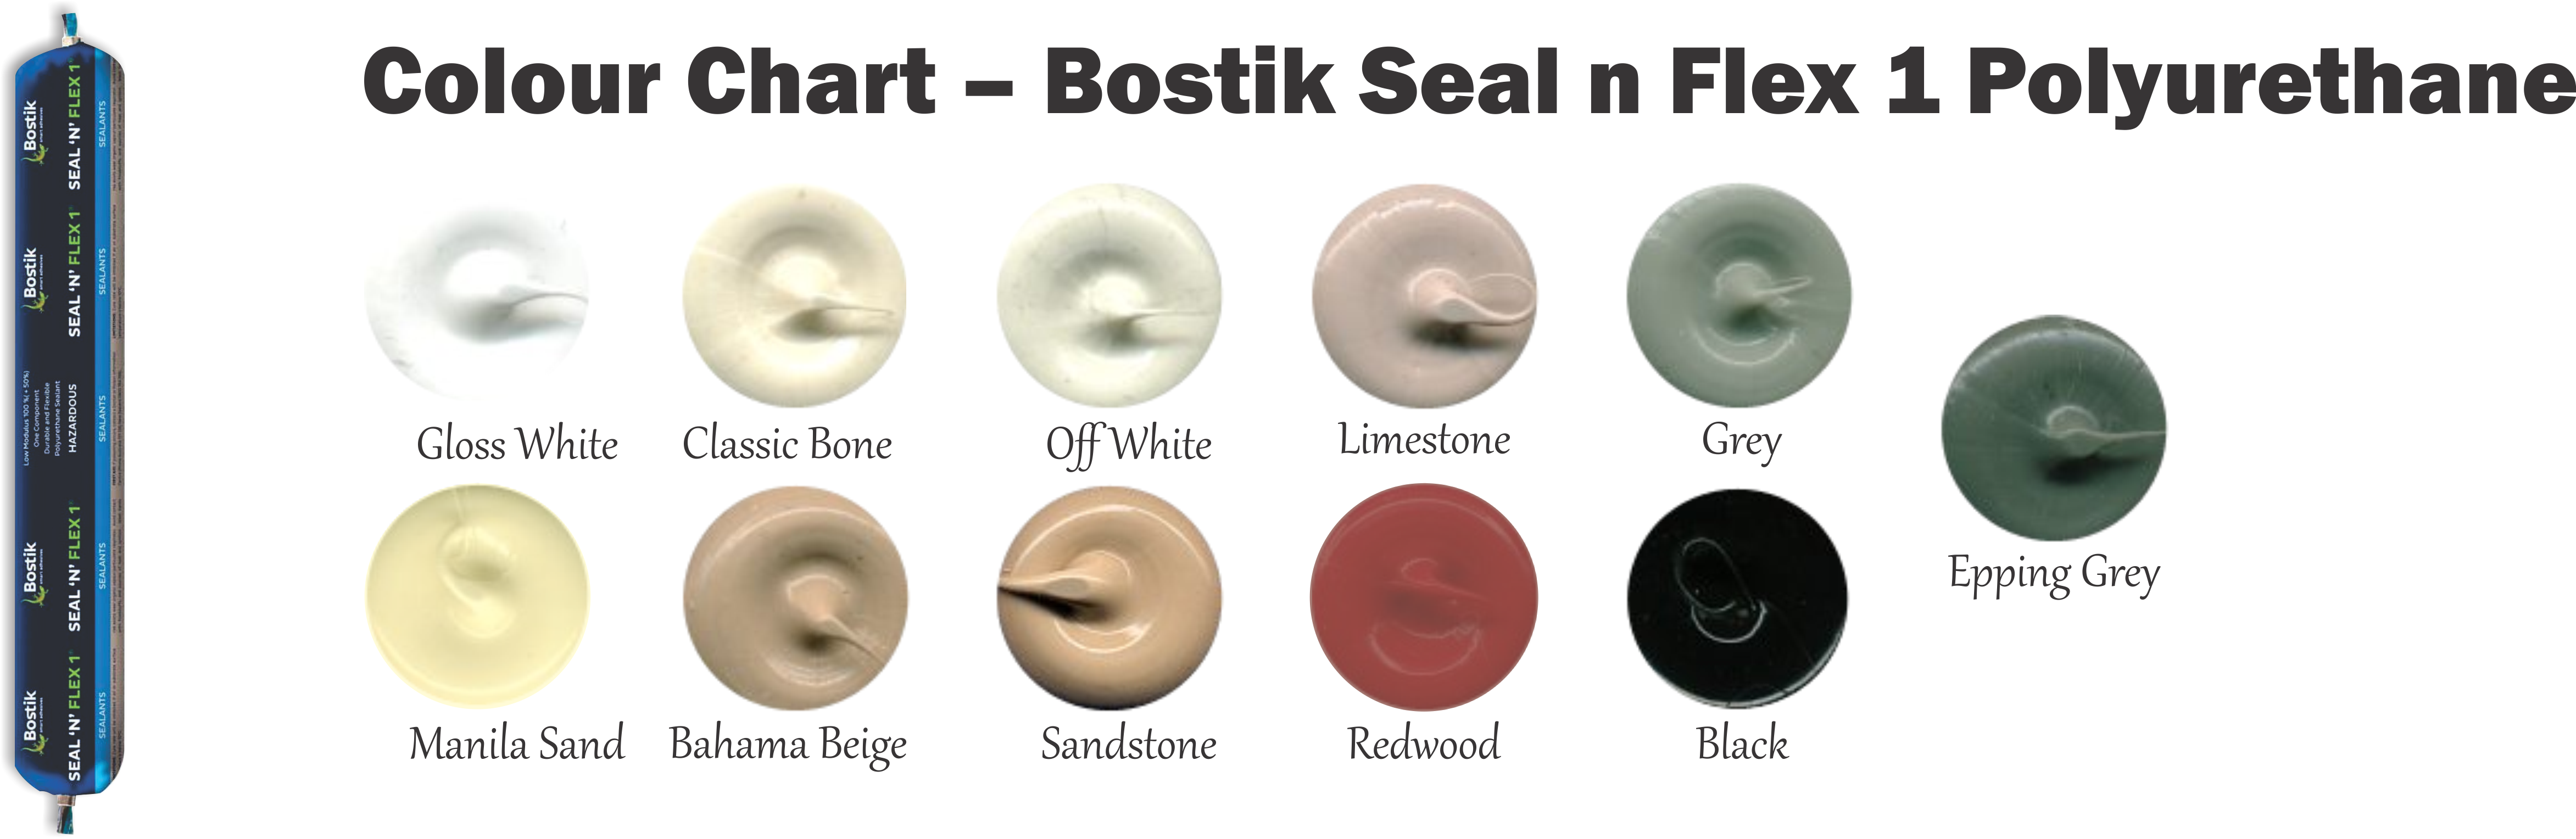 Colour Chart Bostik Seal n Flex 1 Polyurethane